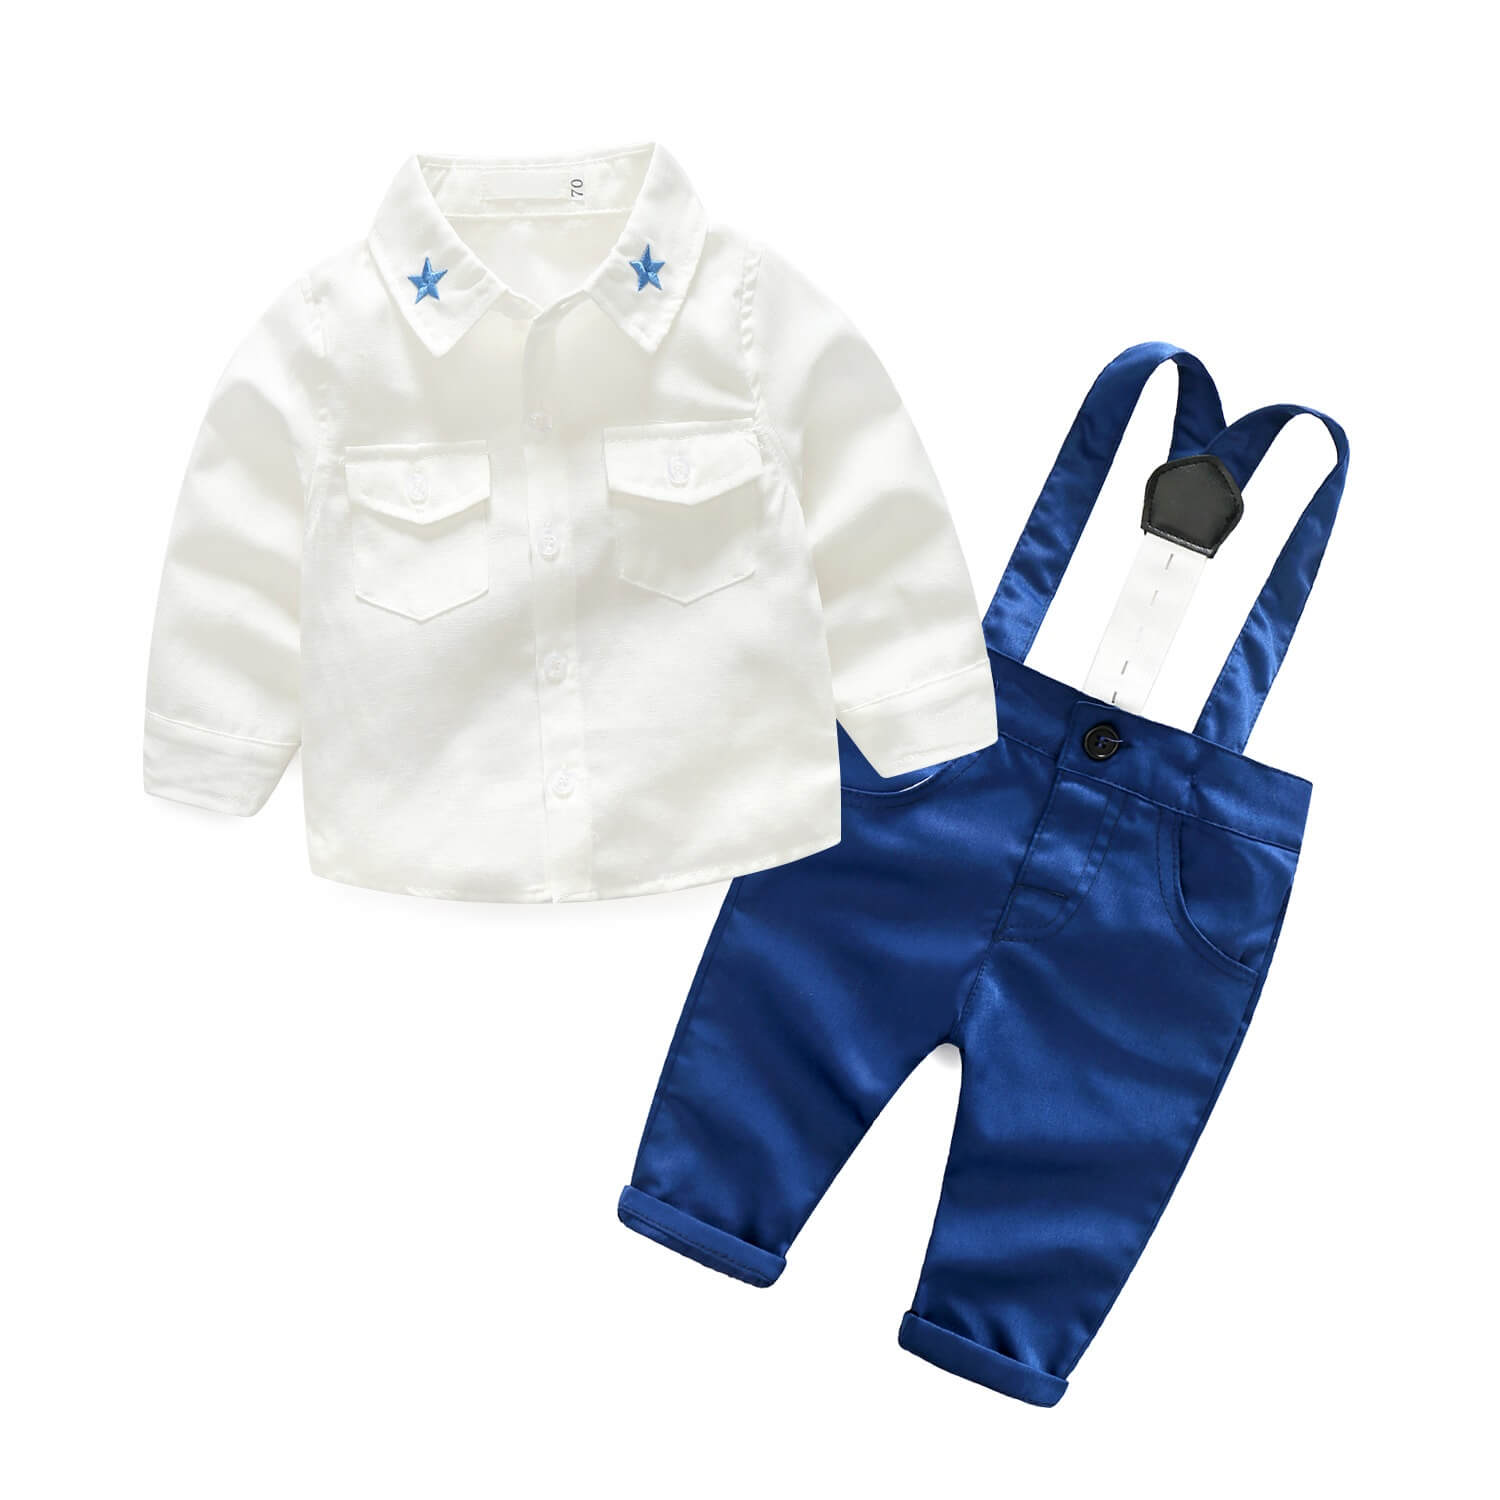 Baby Boy Birthday Gift Clothing Set Shirt Y Back Suspender And Pants